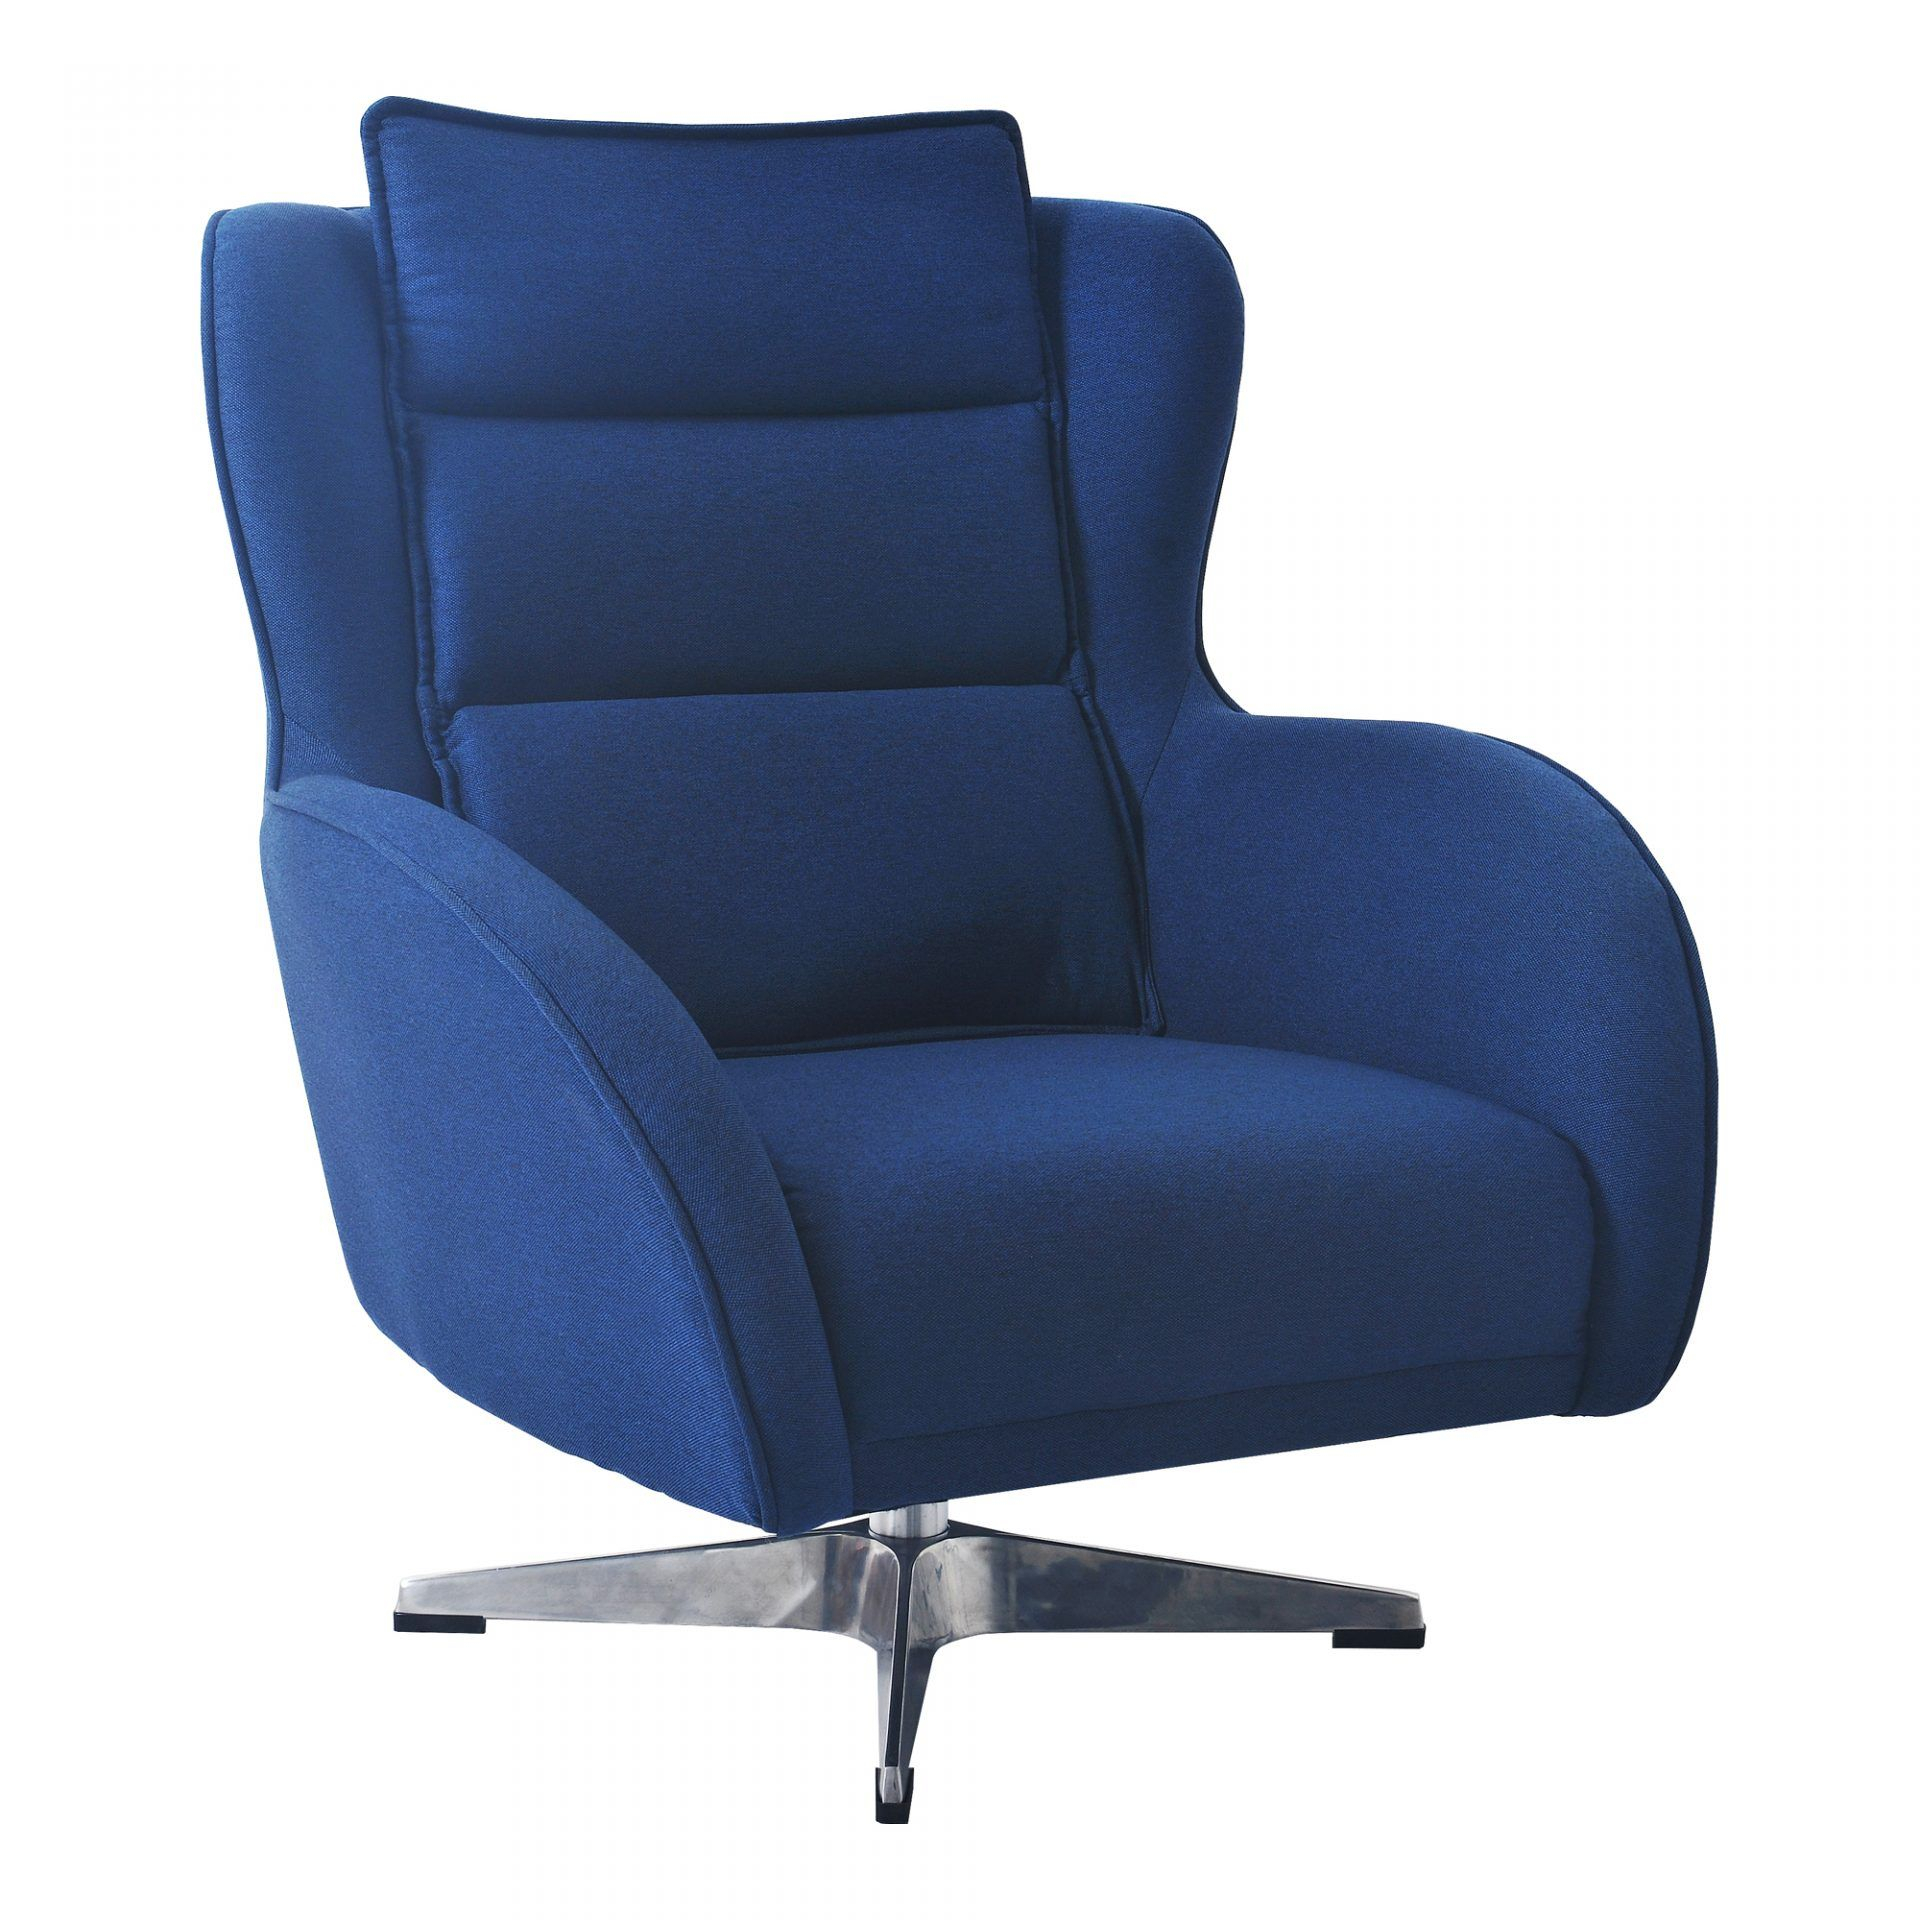 """Revolve Swivel Chair Blue 30""""W X 34""""D X 35""""H